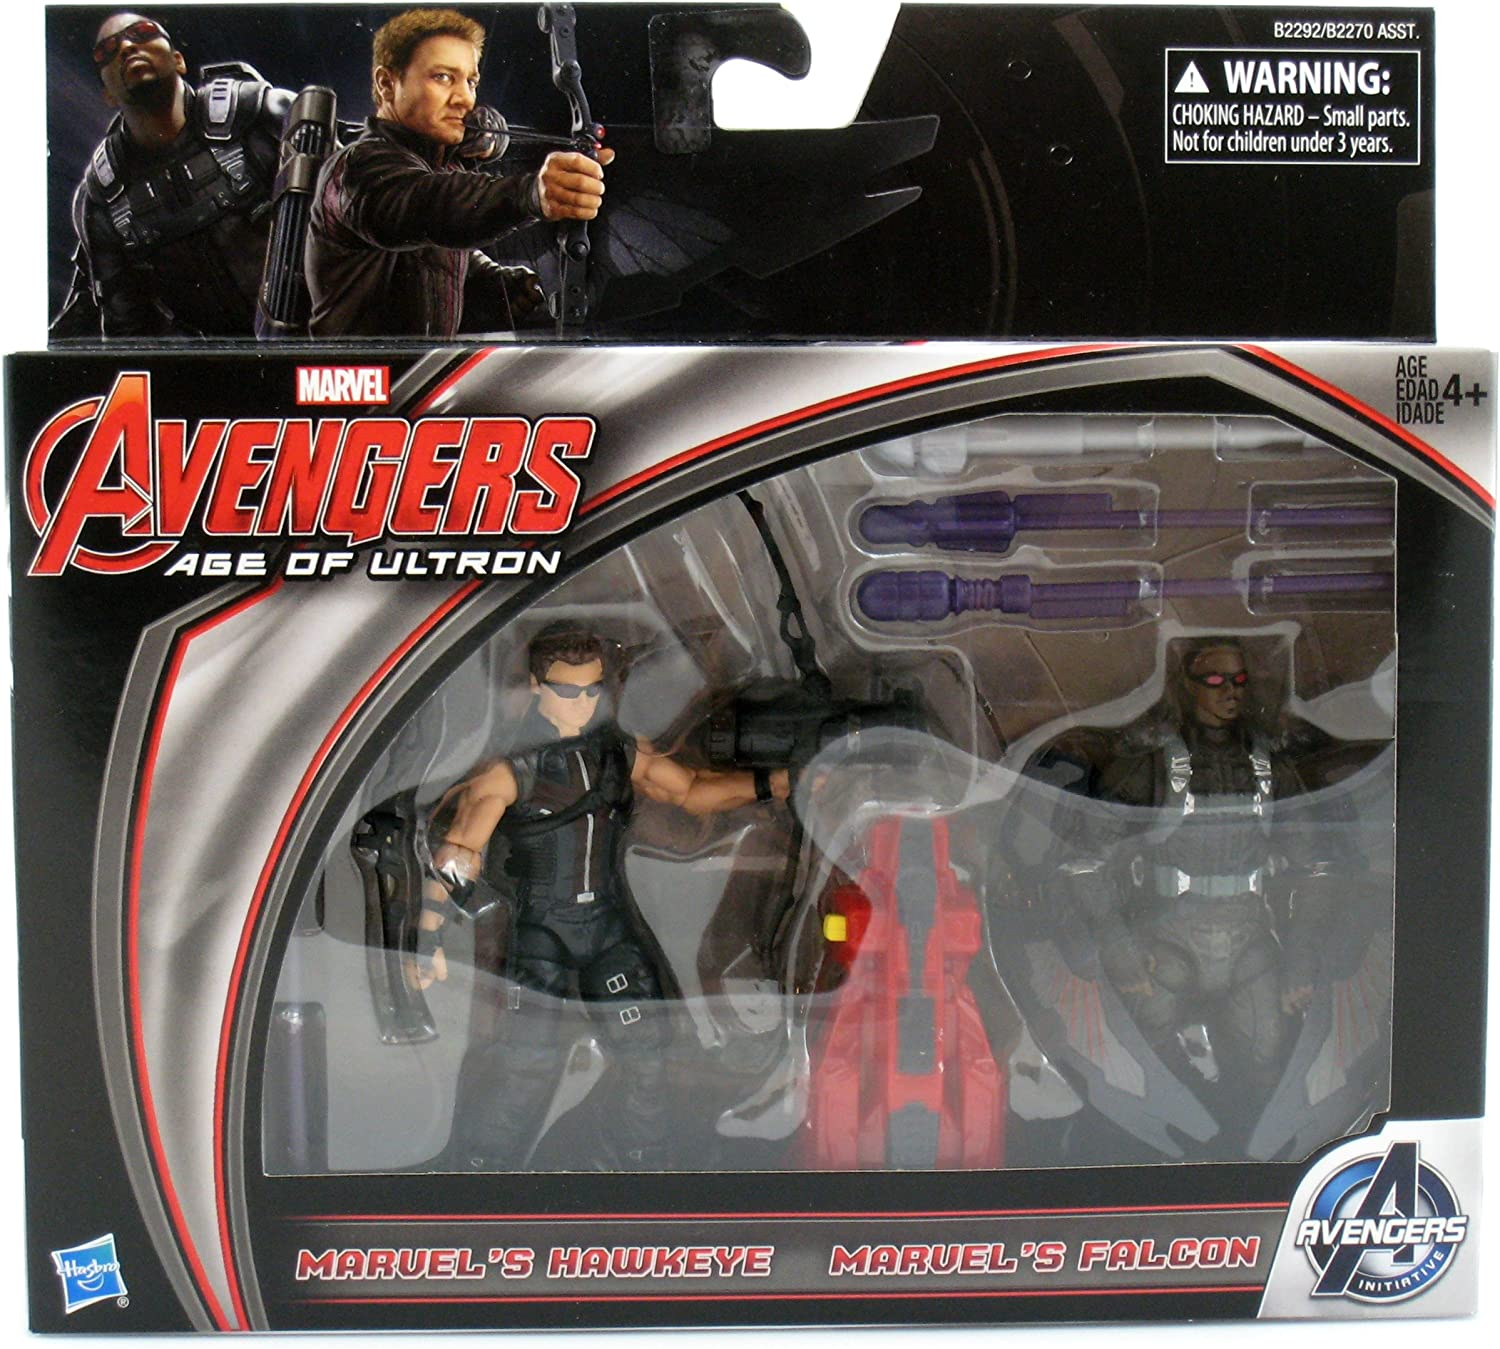 Marvel Avengers Age of Ultron-Hawkeye /& FALCON ACTION FIGURES!